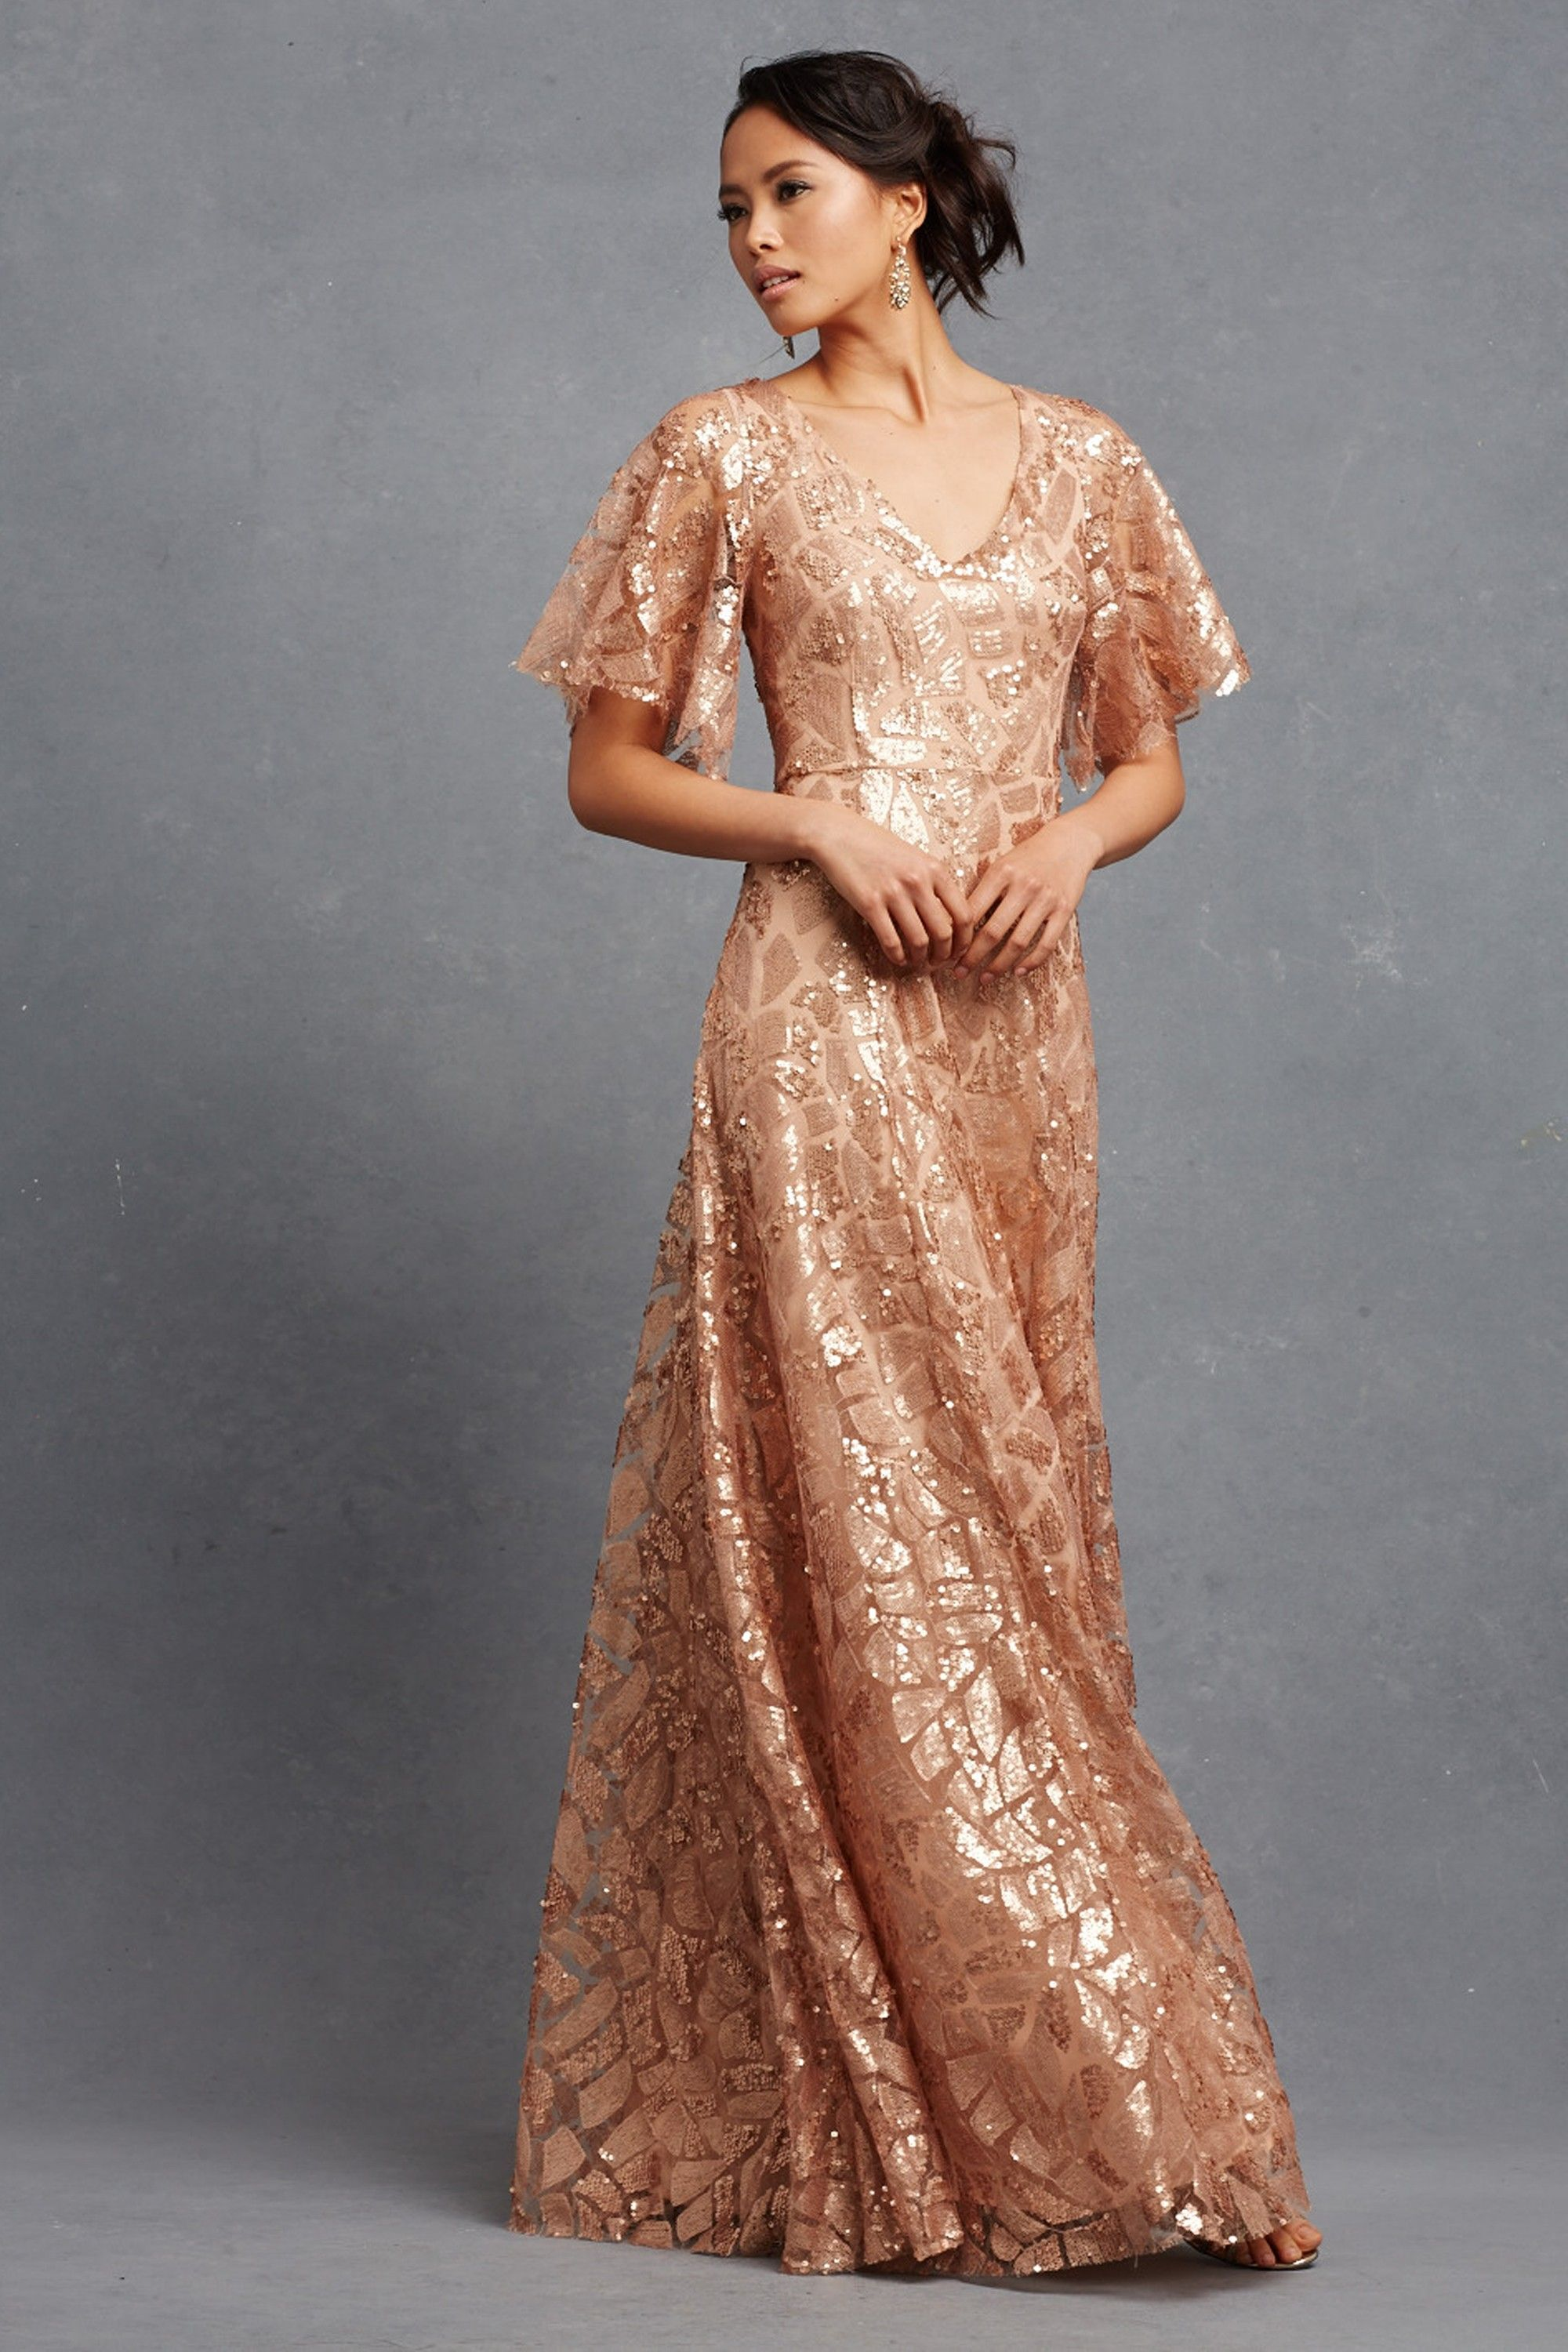 Long wedding reception dresses for the bride  Pin by Anna Maria Clark on Bridesmaid Dresses  Pinterest